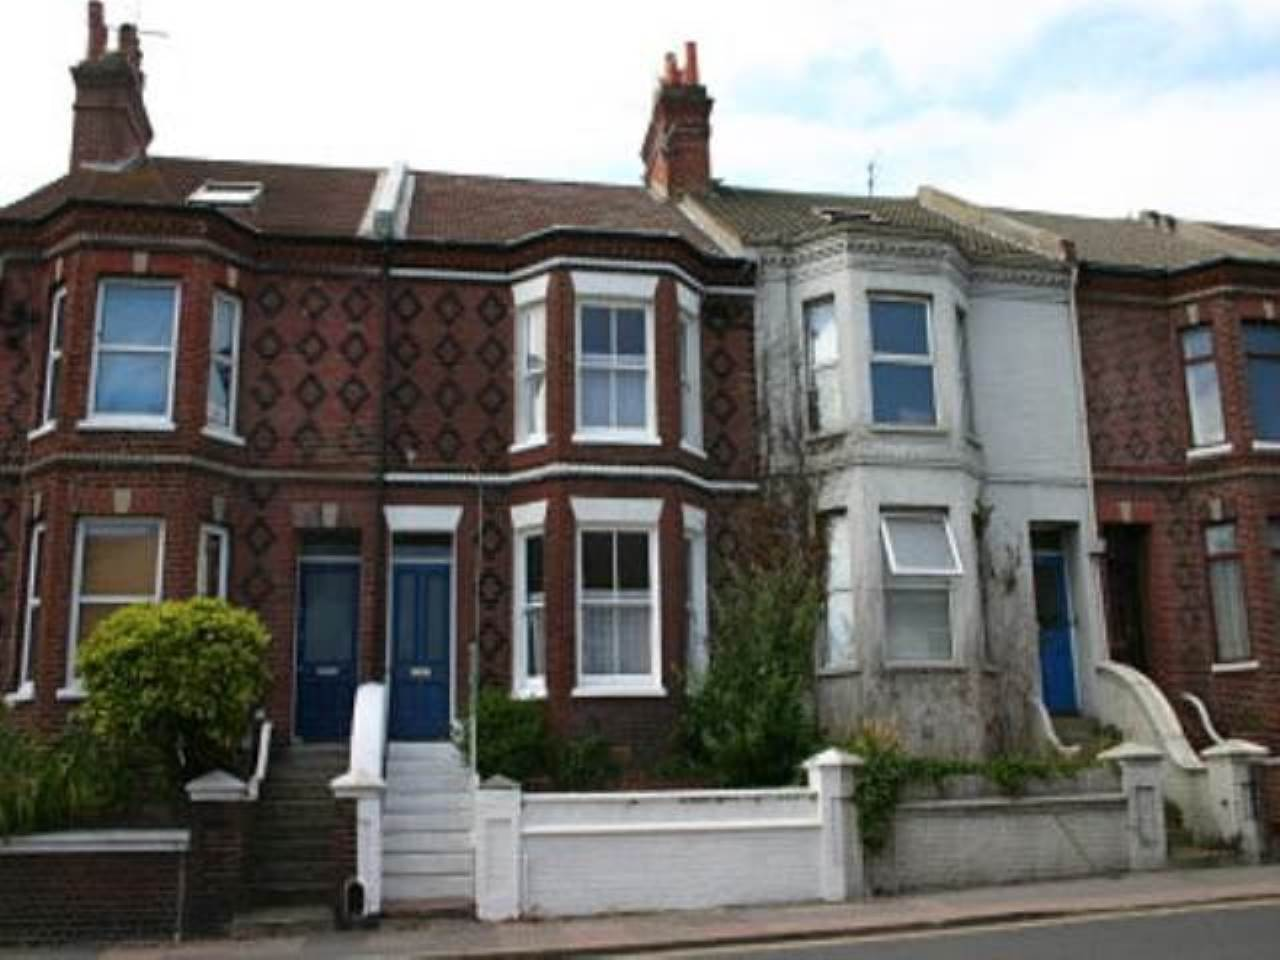 6 bed house to rent in Upper Lewes Rd, Brighton 9